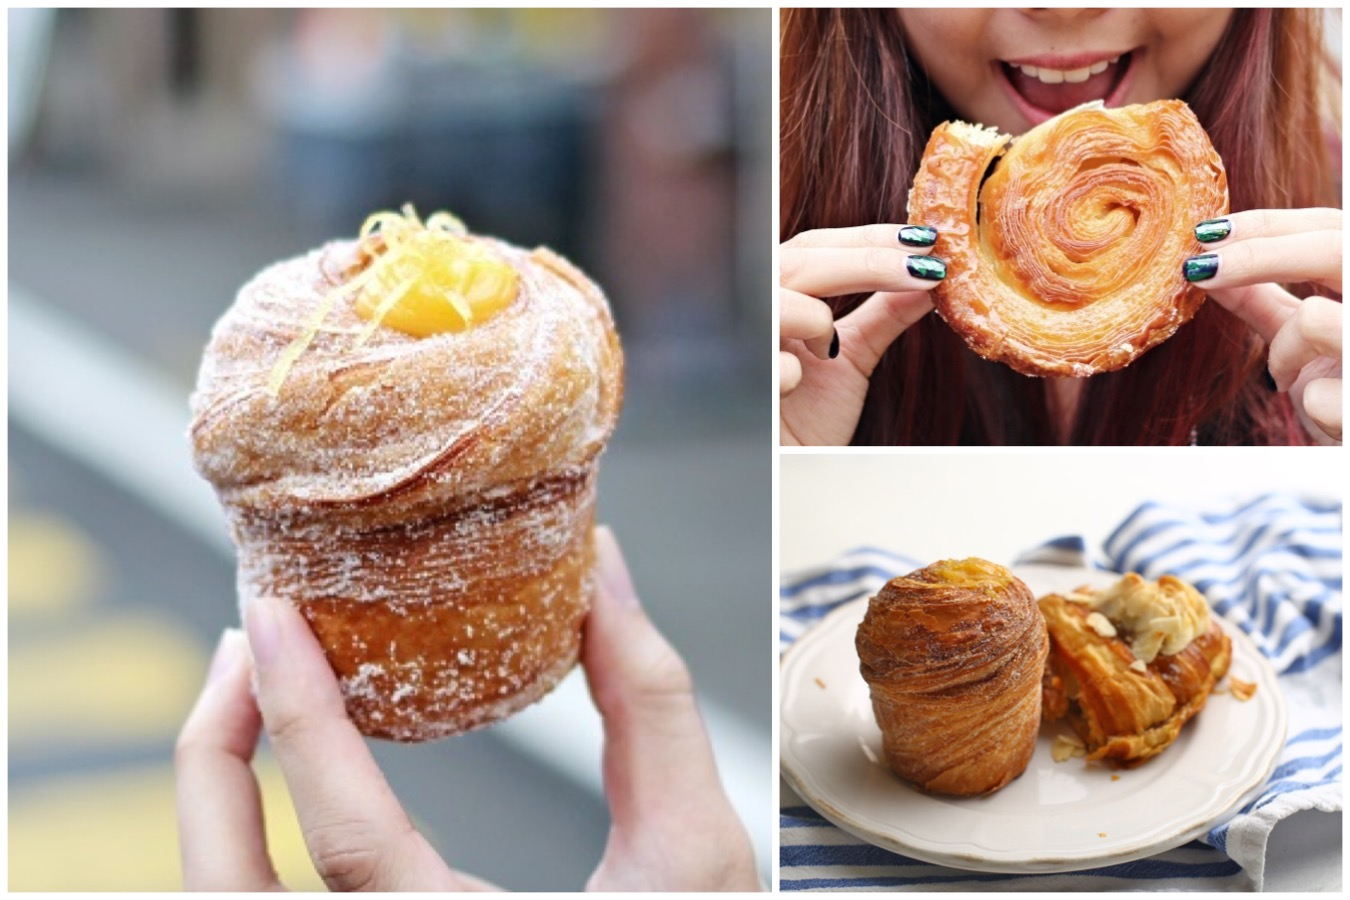 Lune Croissanterie - Possibly The Most Raved About Bakery In Melbourne, For Cruffins And Croissants